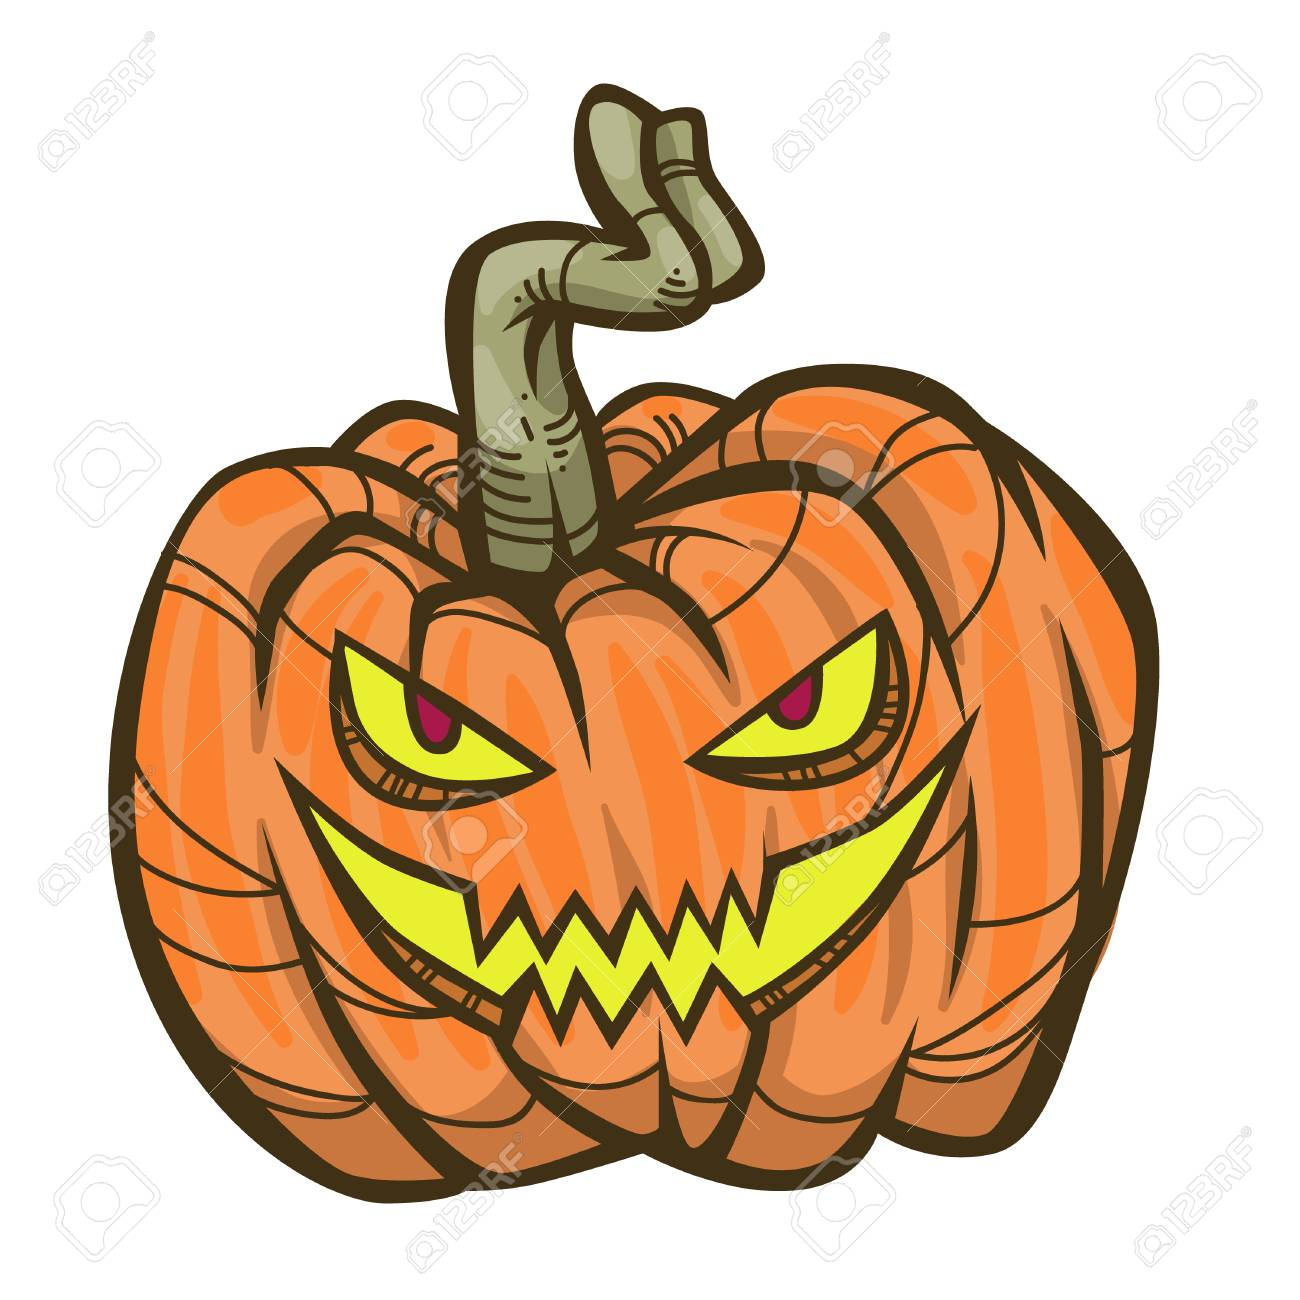 Scary Halloween cartoon pumpkin on white background. Vector illustration..